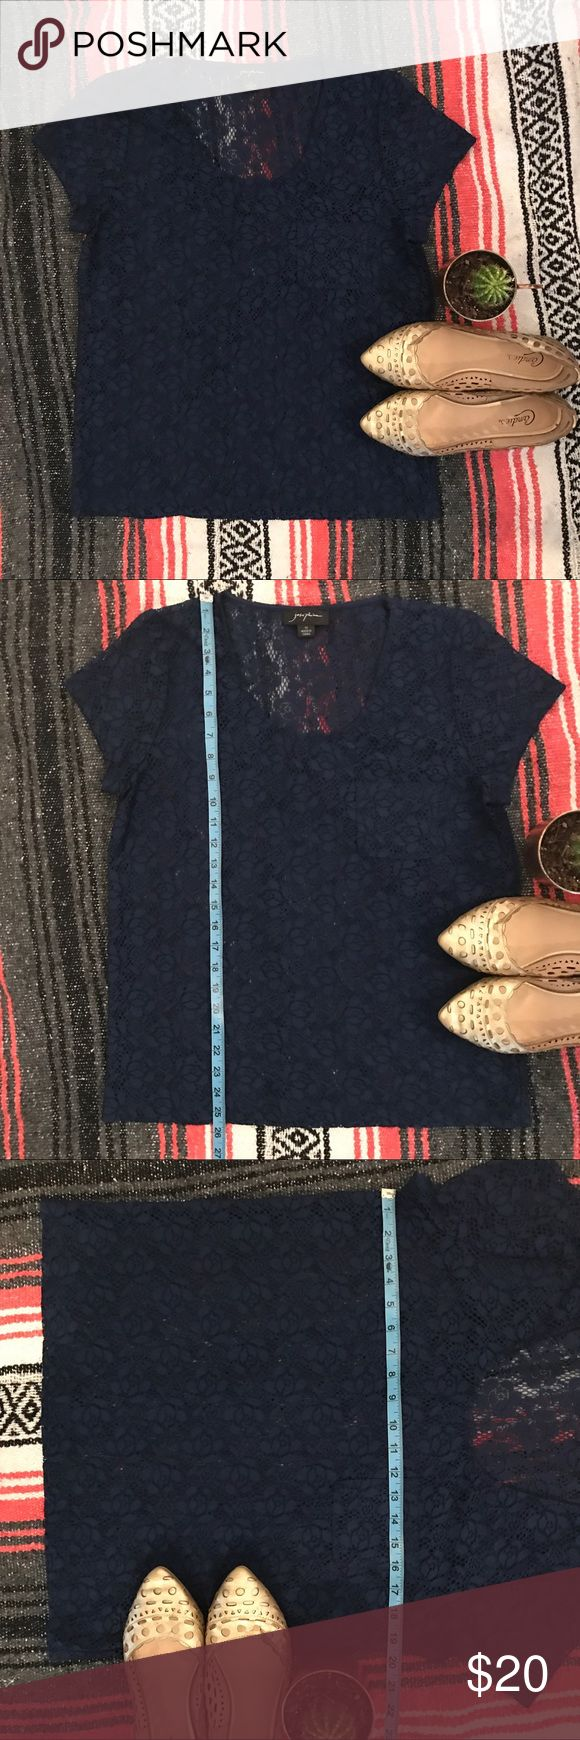 Josephine Women's Lace Dressy Casual Shirt Josephine Women's Lace Dressy Casual Shirt - Navy Blue - Size Medium - Great condition, no known flaws - UA to UA around 19 1/2 inches - Top to bottom around 25 1/2 inches - *accessories not included Josephine Tops Blouses